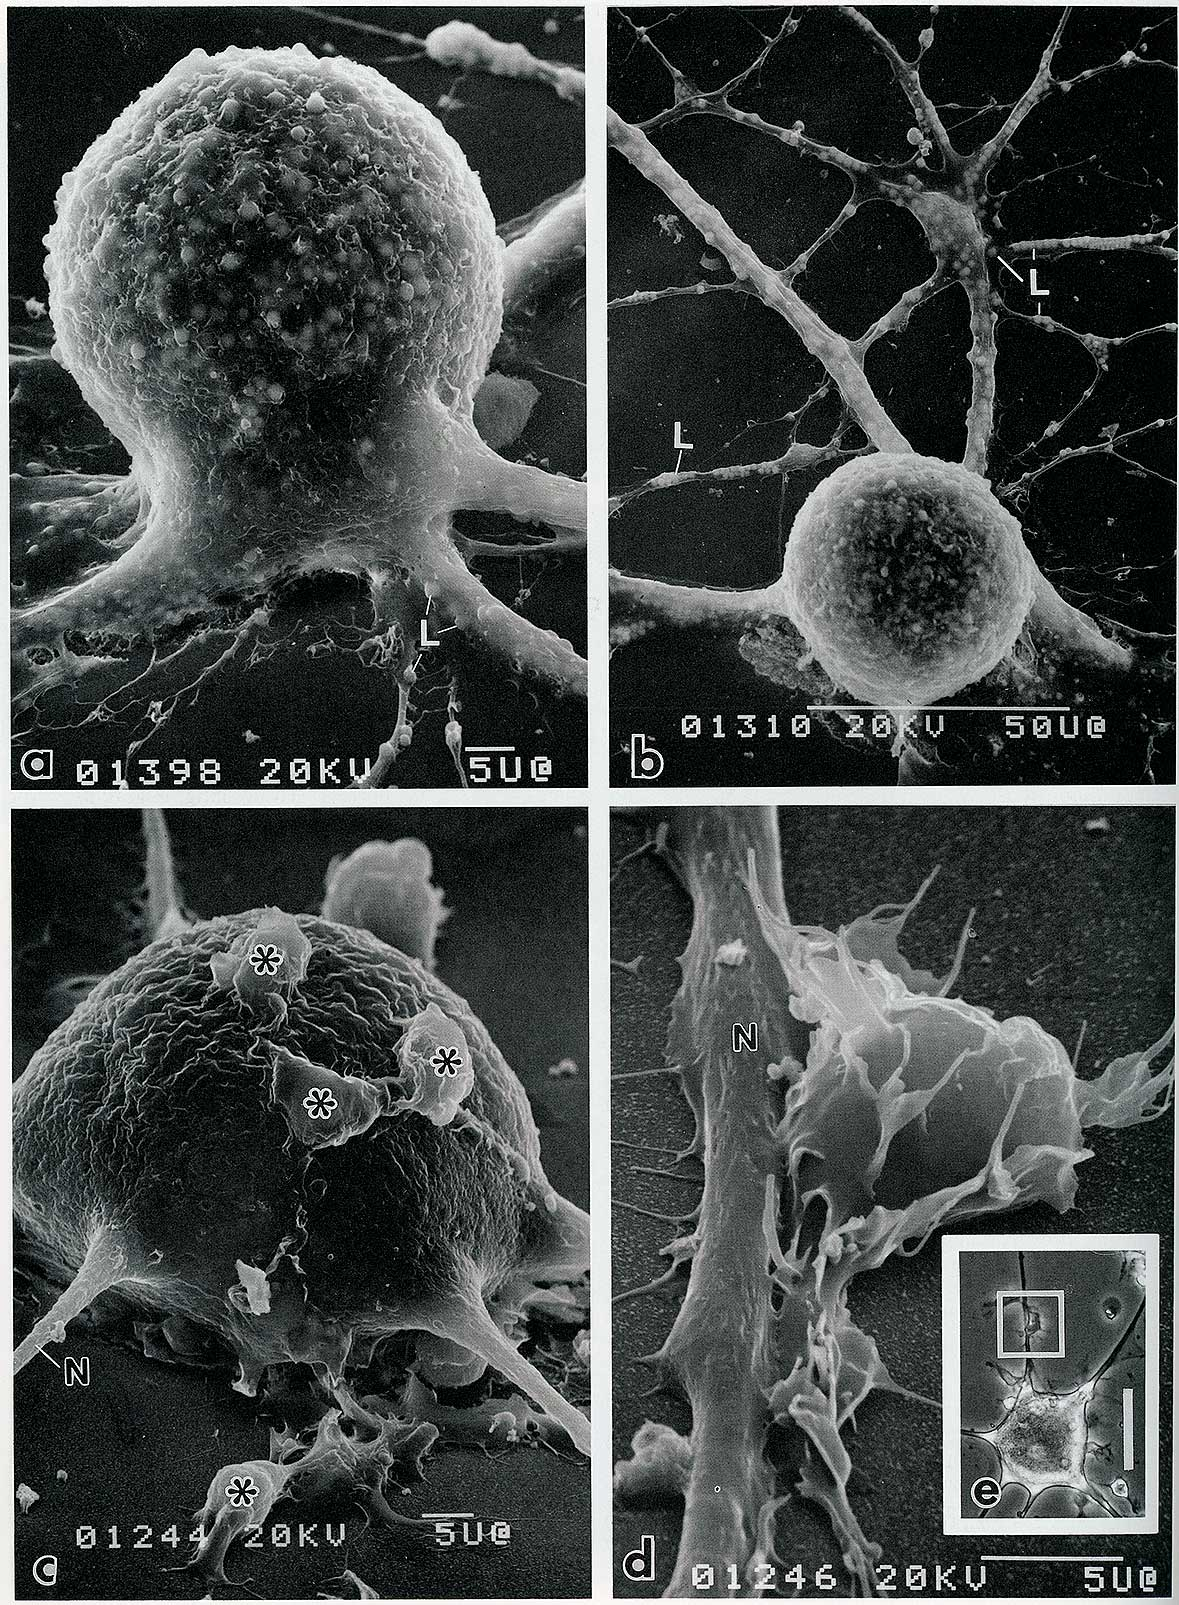 scanning electron micrographs of neurons in culture Robert Berdan ©